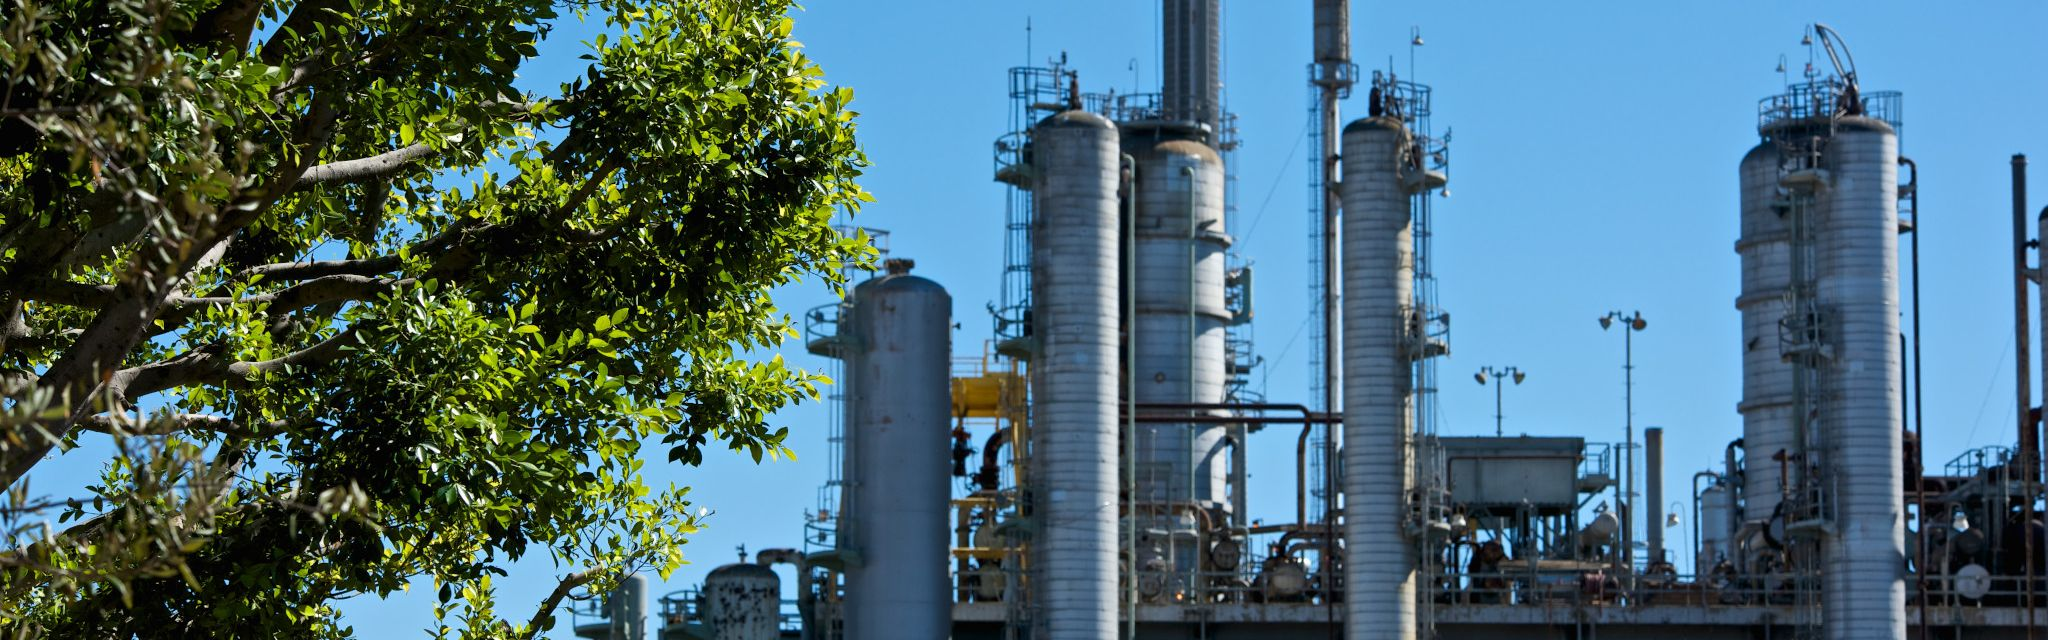 Daytime shot of the Los Angeles Refinery, with tree in foreground